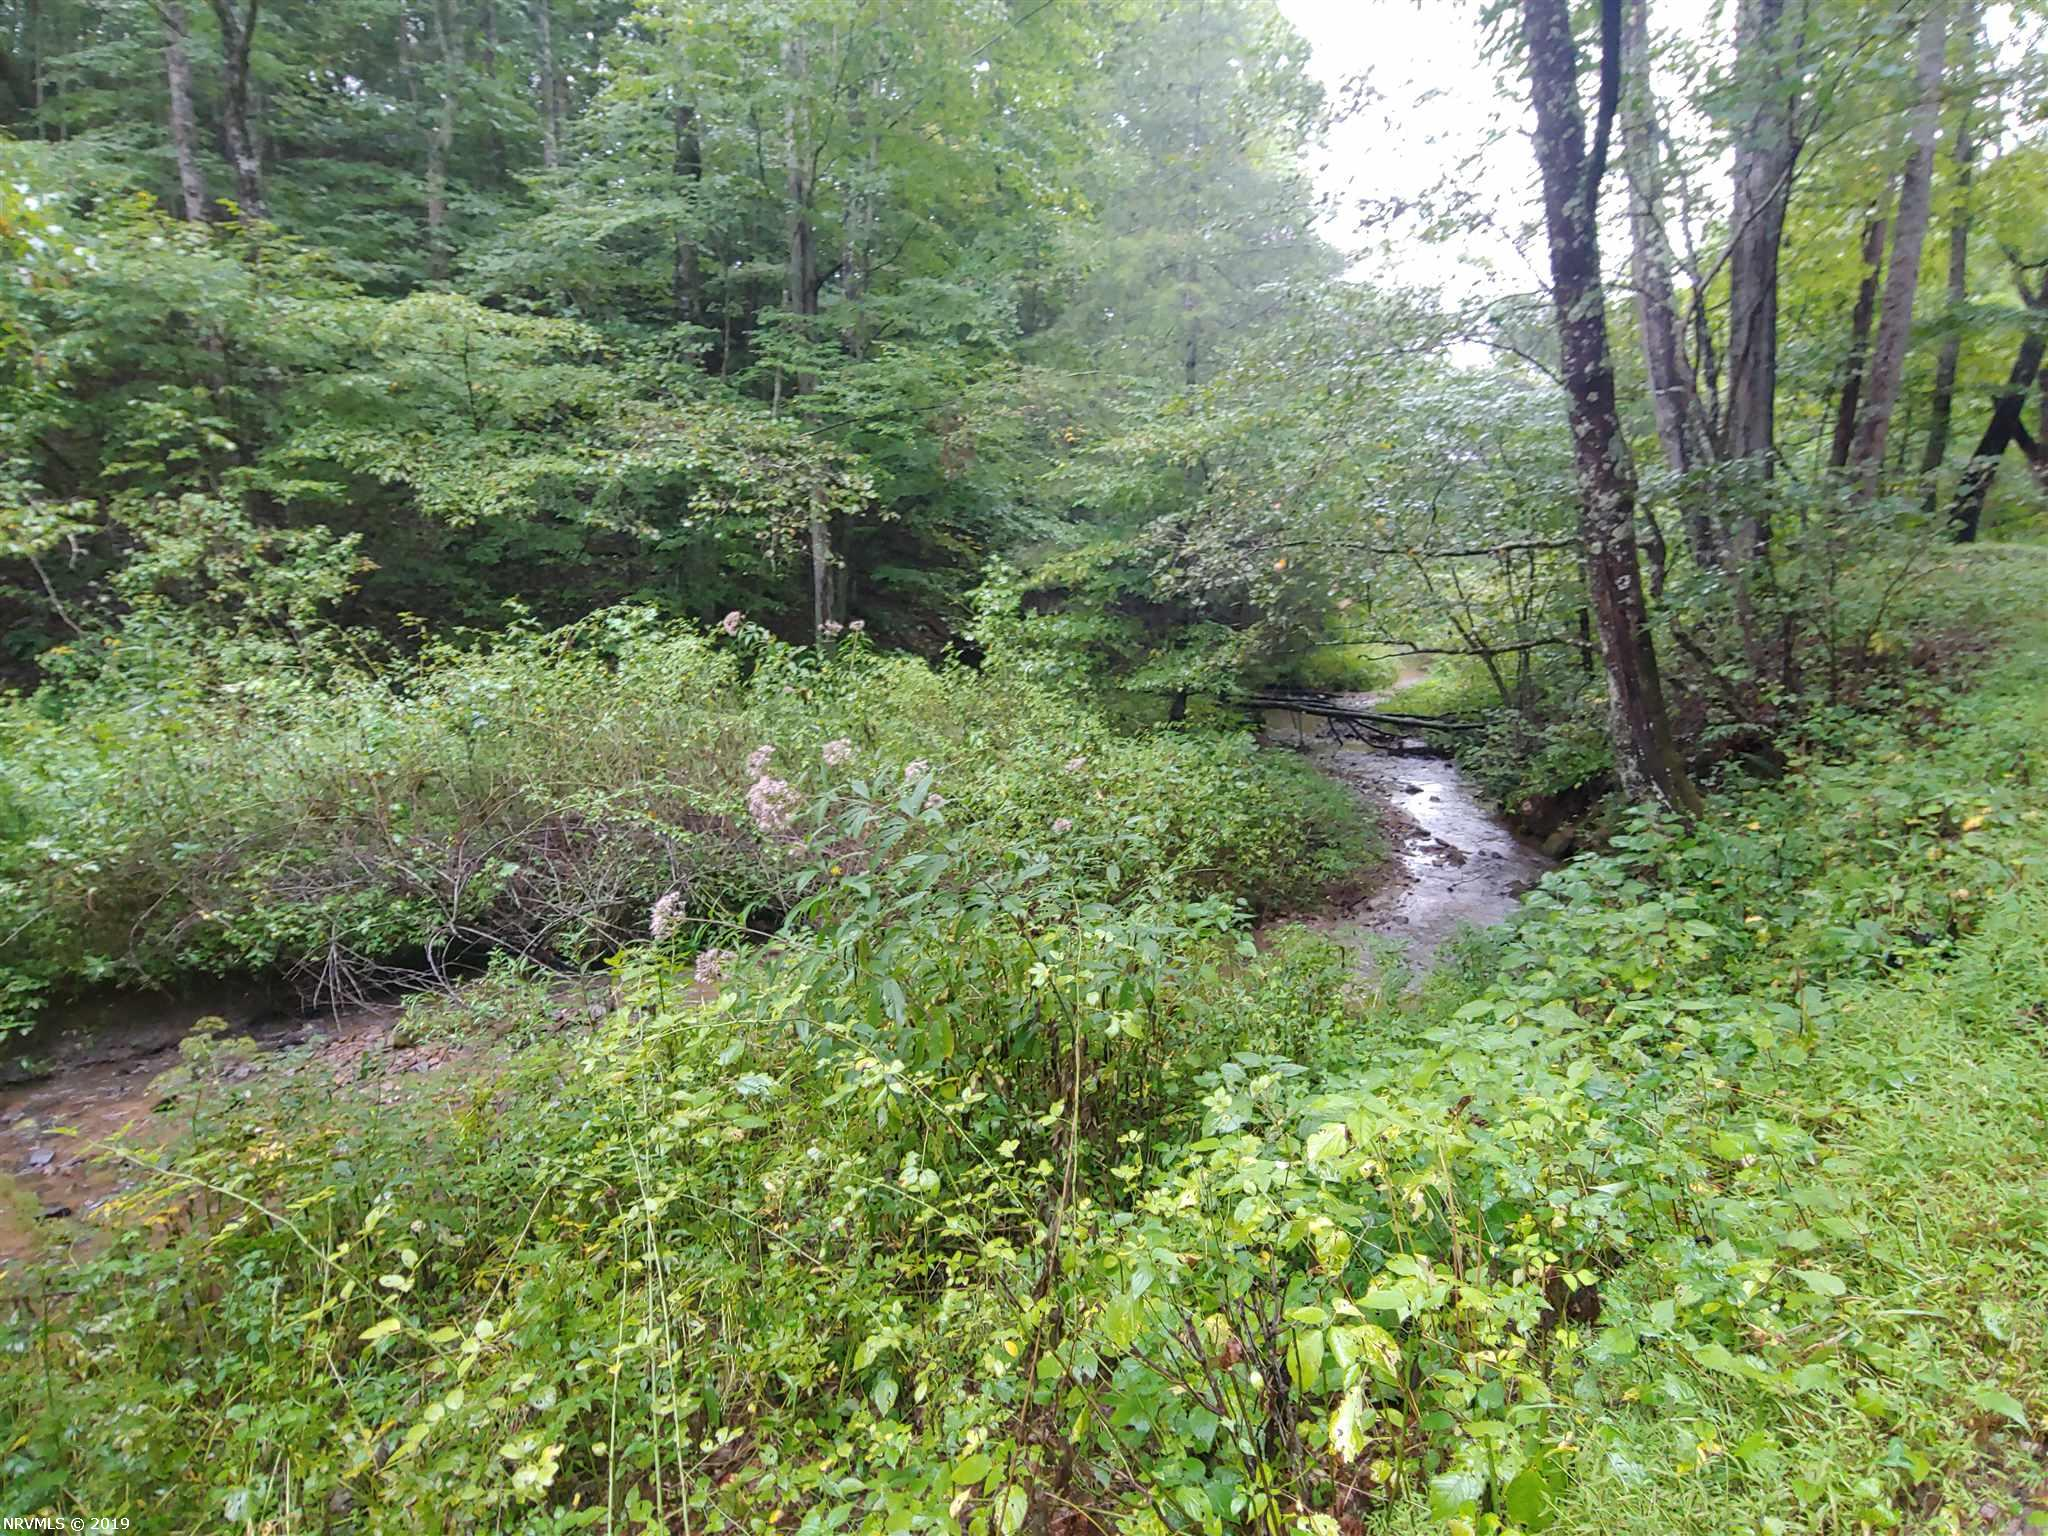 Possible building site with gorgeous views! Has a small branch and apple trees.  Would make a great hunting property as well due to it's abundance of wildlife. A national forest with horse trails is only 2-3 miles away.